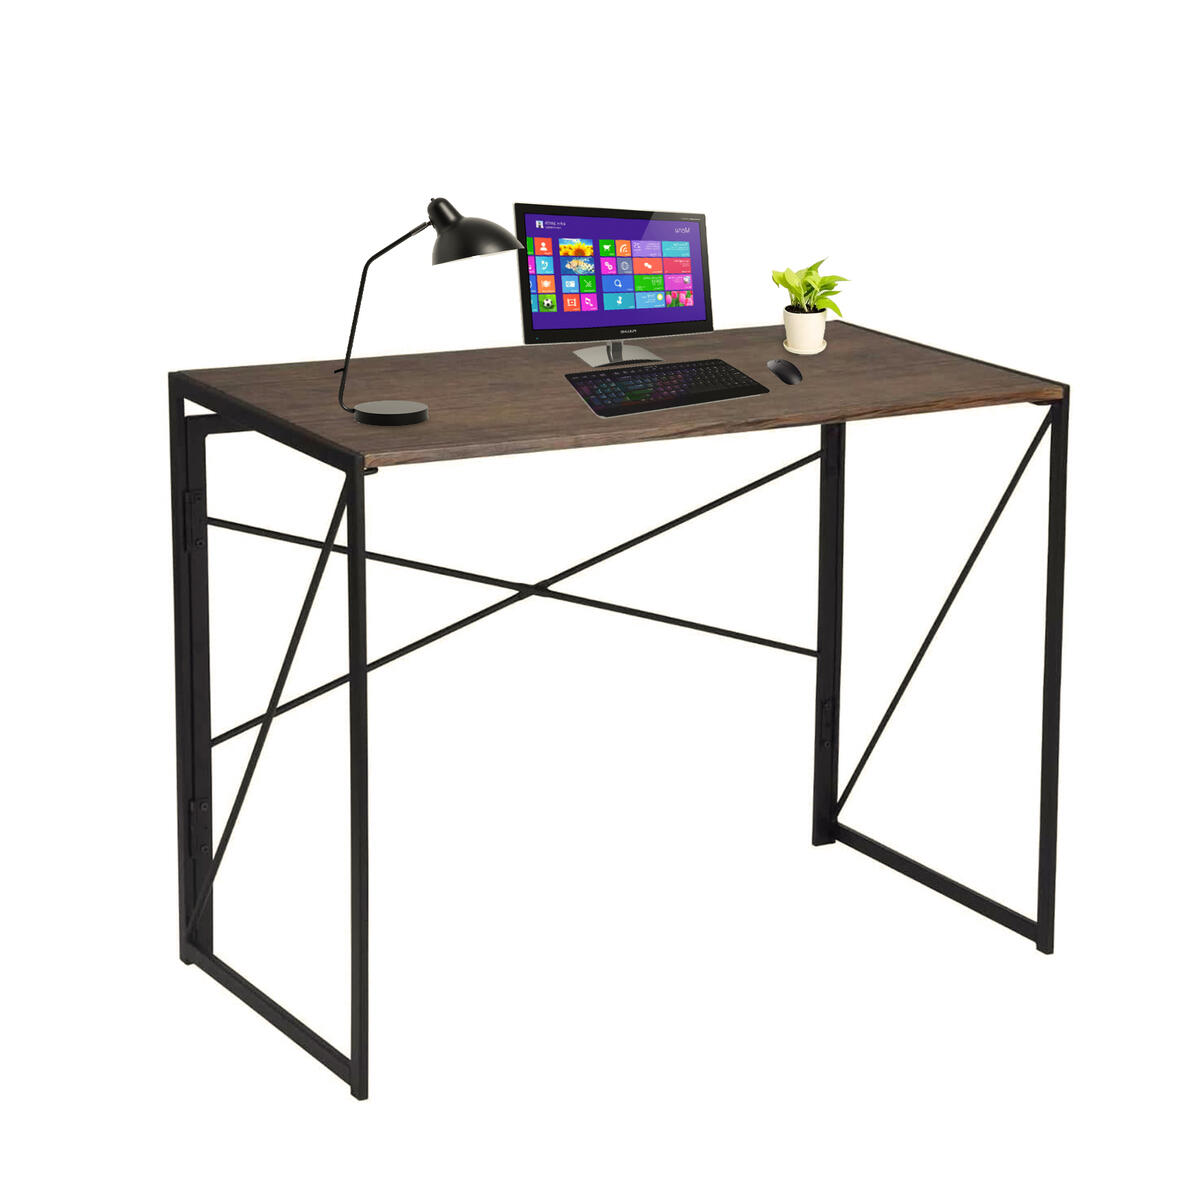 ASAR Working Desk Foldable Design Brown Wood Metallic Frame for Home Office Study Room, Gaming Desk for Writing and Working Spaces